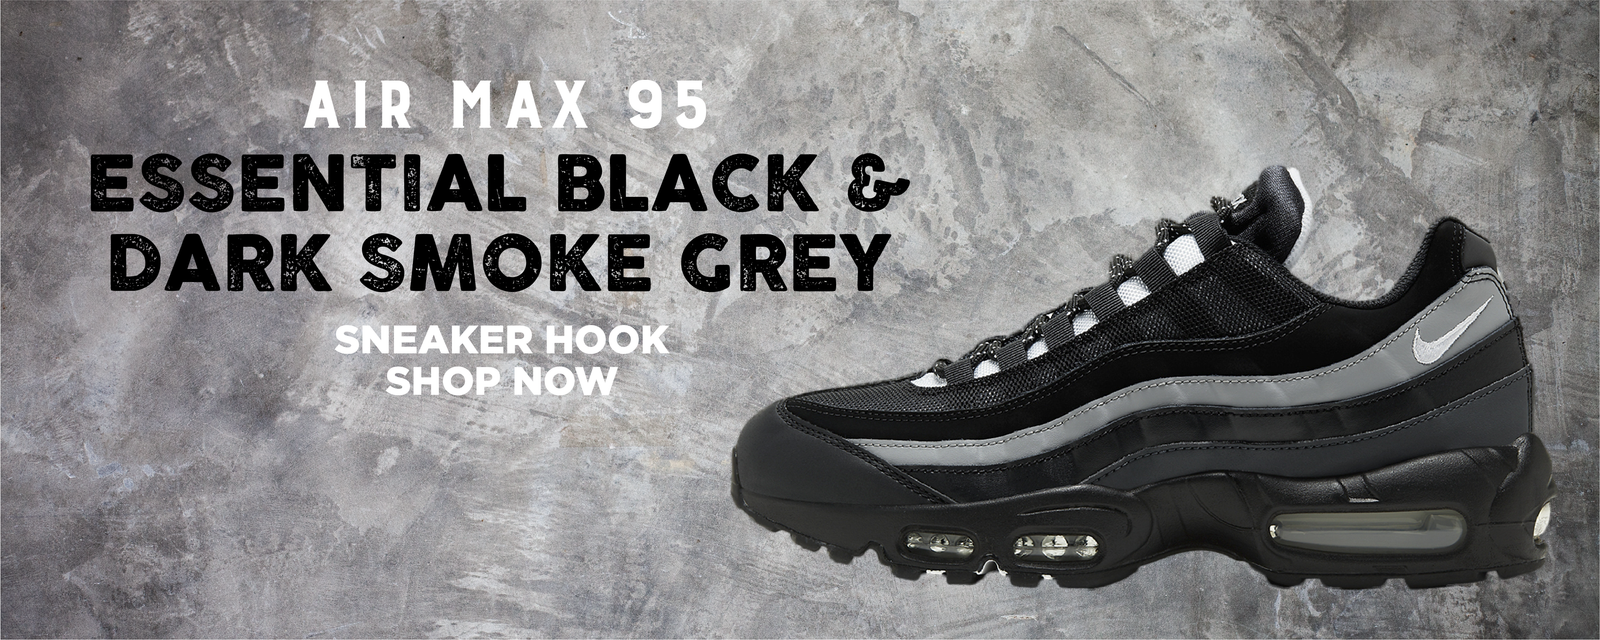 Air Max 95 Essential Black And Dark Smoke Grey Clothing to match Sneakers | Clothing to match Nike Air Max 95 Essential Black And Dark Smoke Grey Shoes